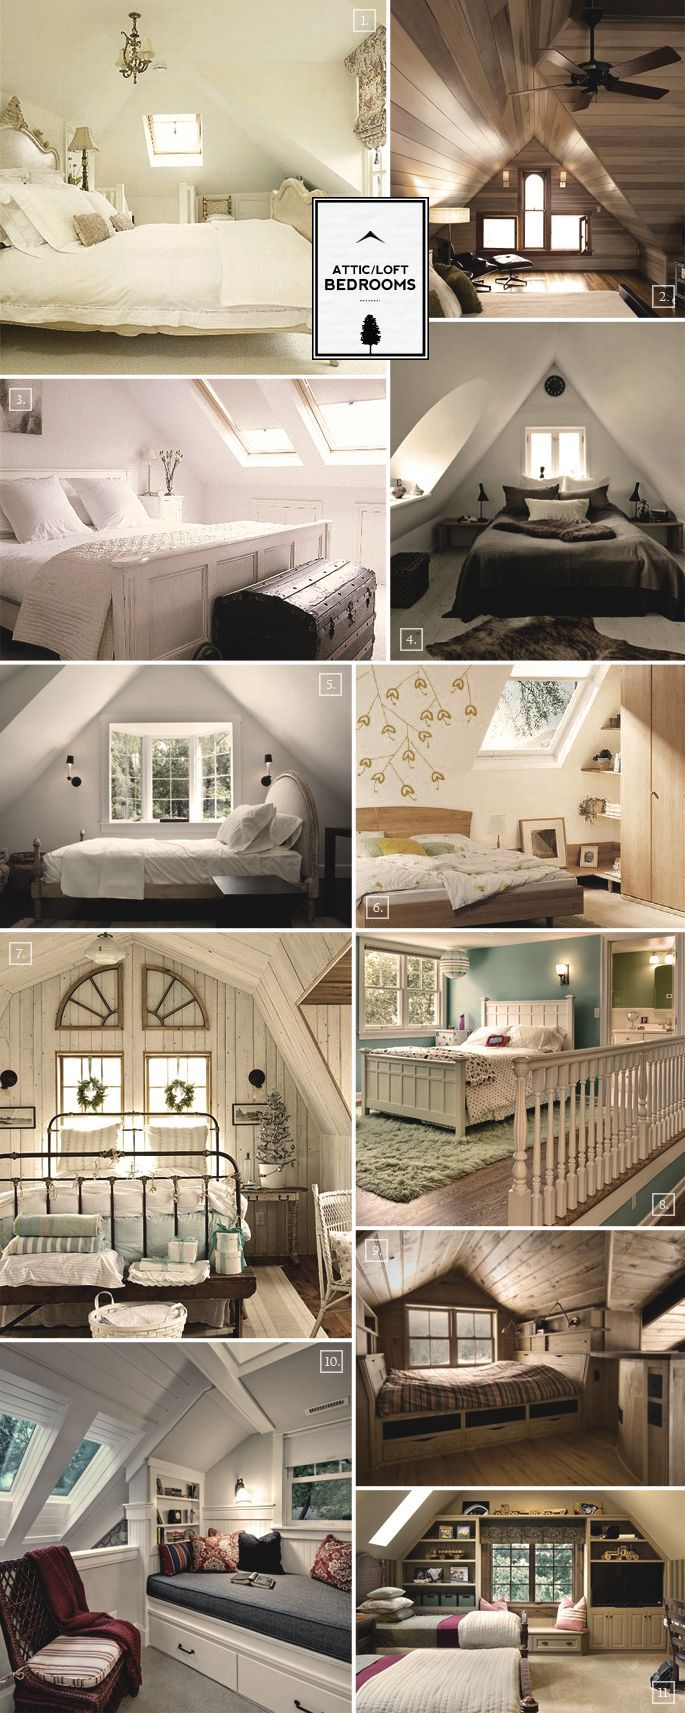 cool Design Ideas for an Attic / Loft Bedroom by http://www.best100homedecorpics.club/attic-bedrooms/design-ideas-for-an-attic-loft-bedroom/